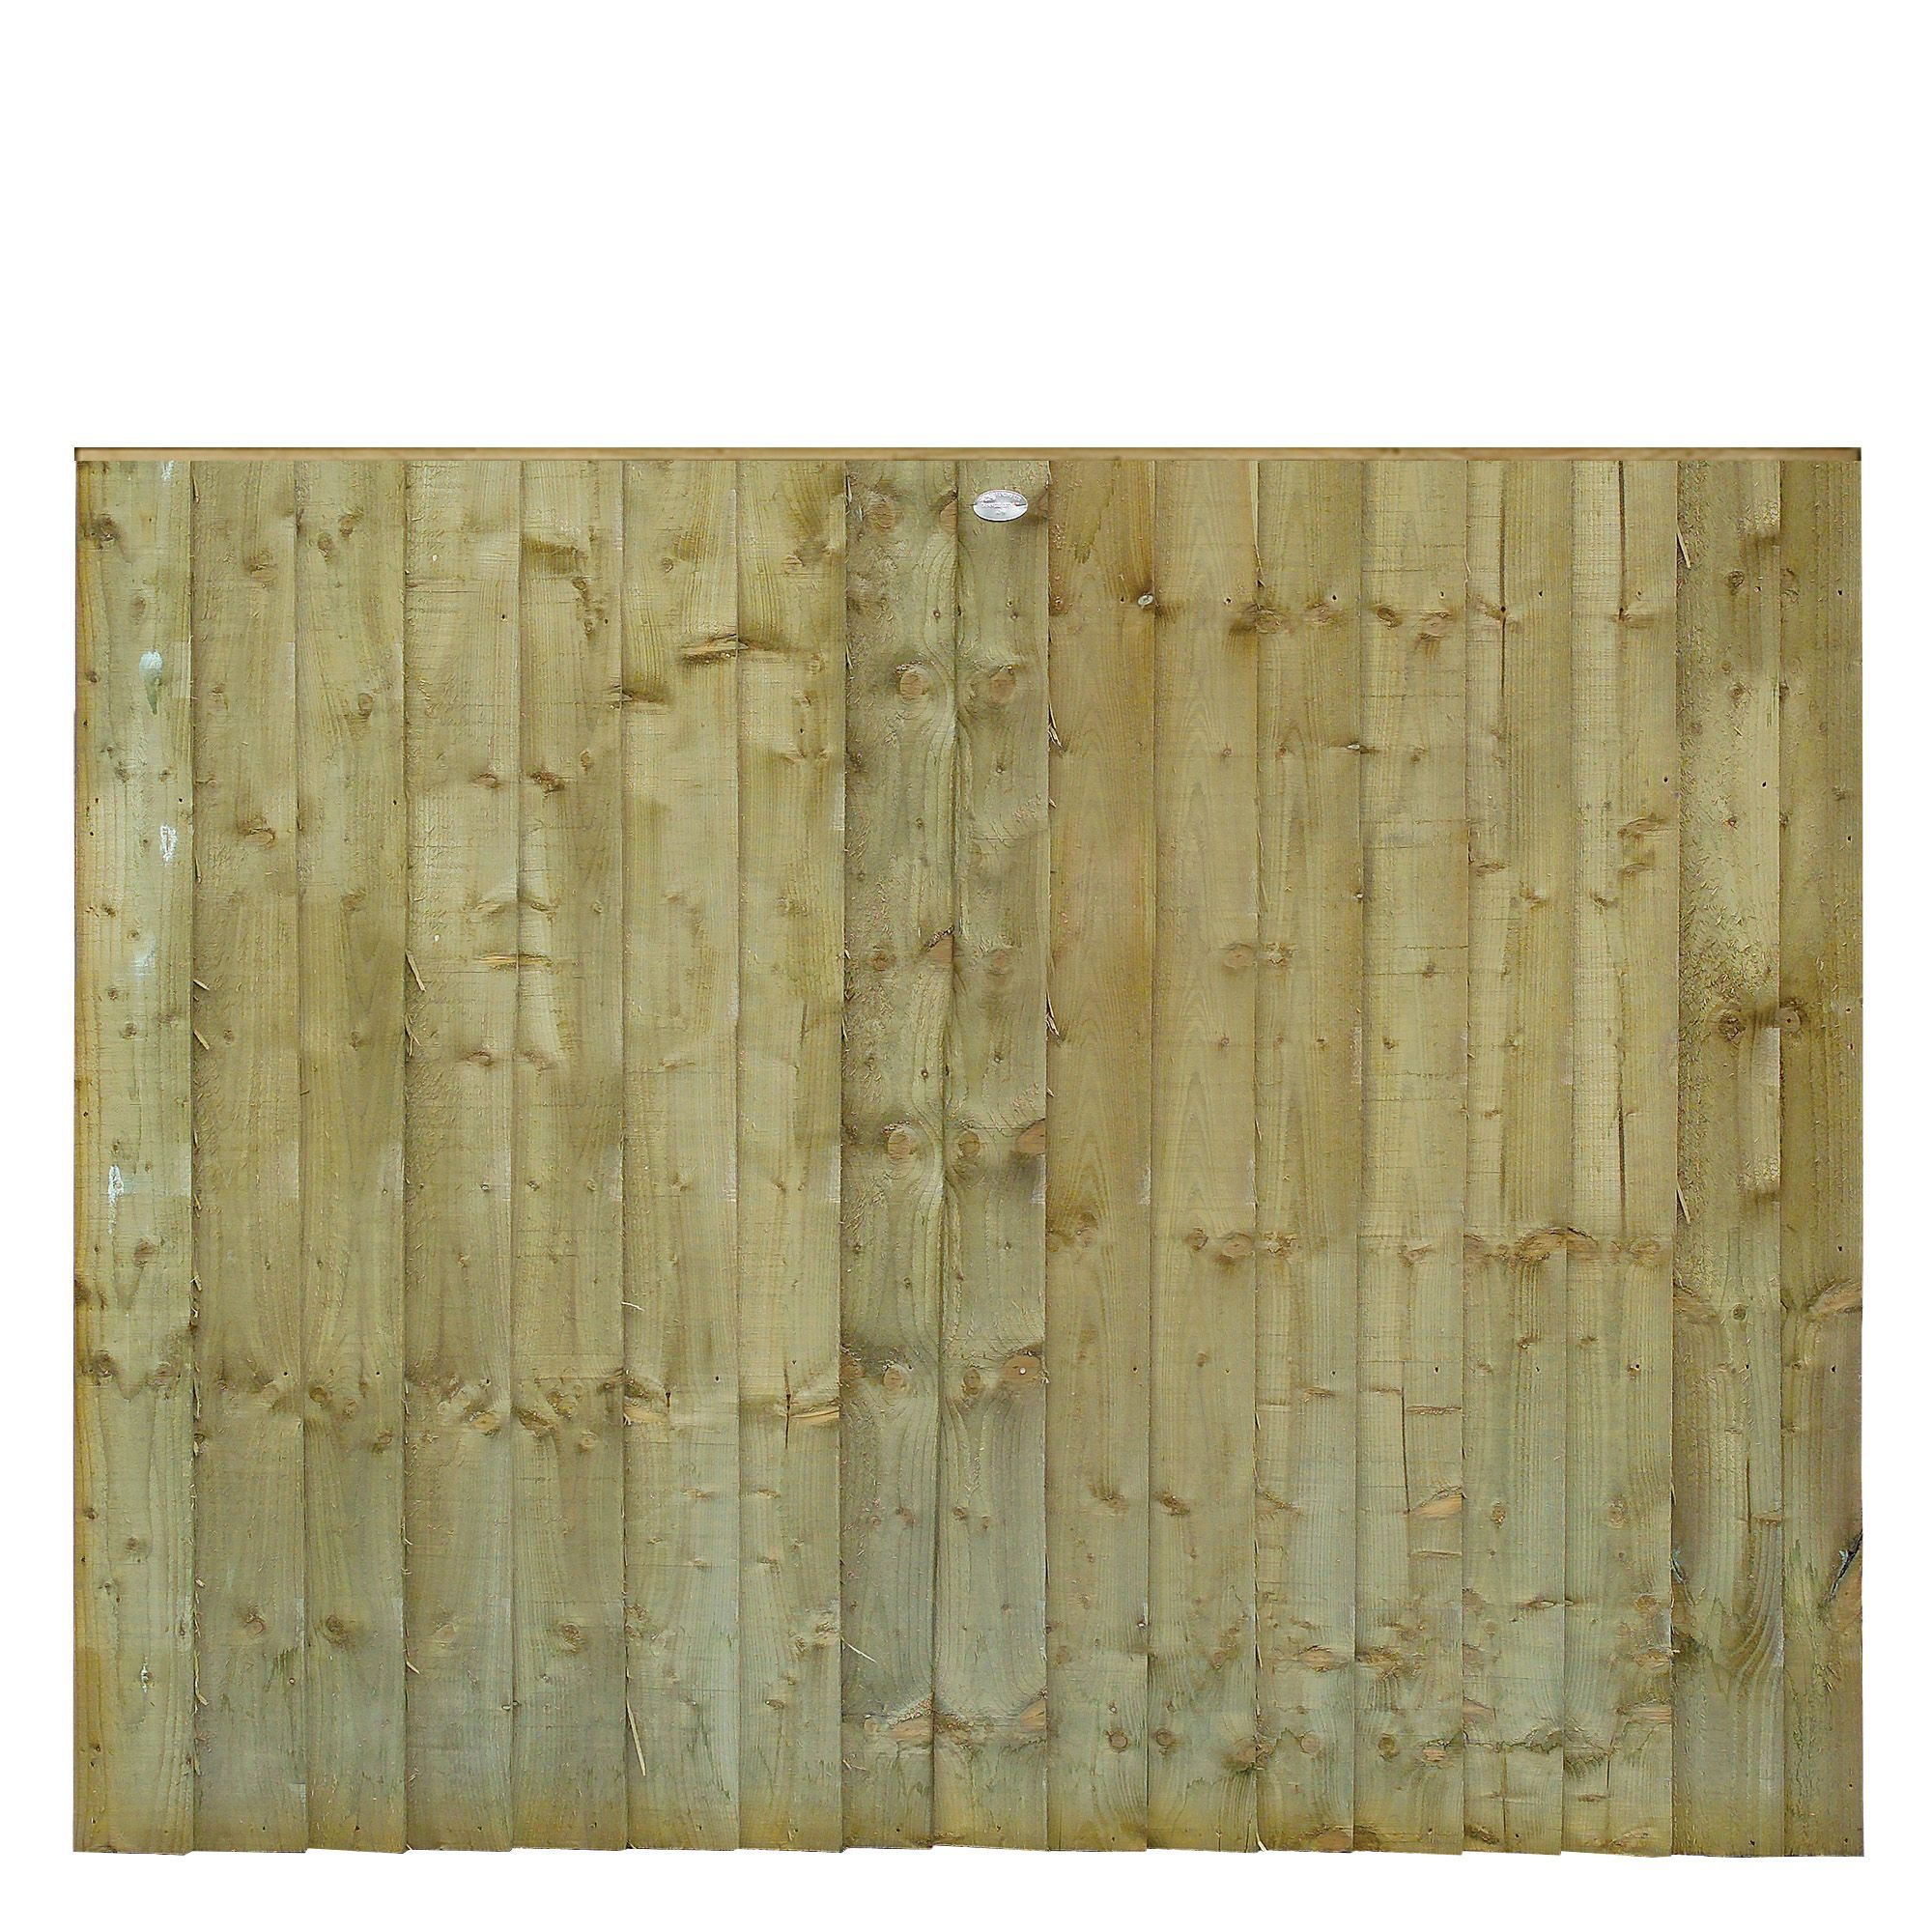 Grange Professional Feather Edge Overlap Vertical Slat Fence Panel (w)1.83 M (h)1.5m, Pack Of 5